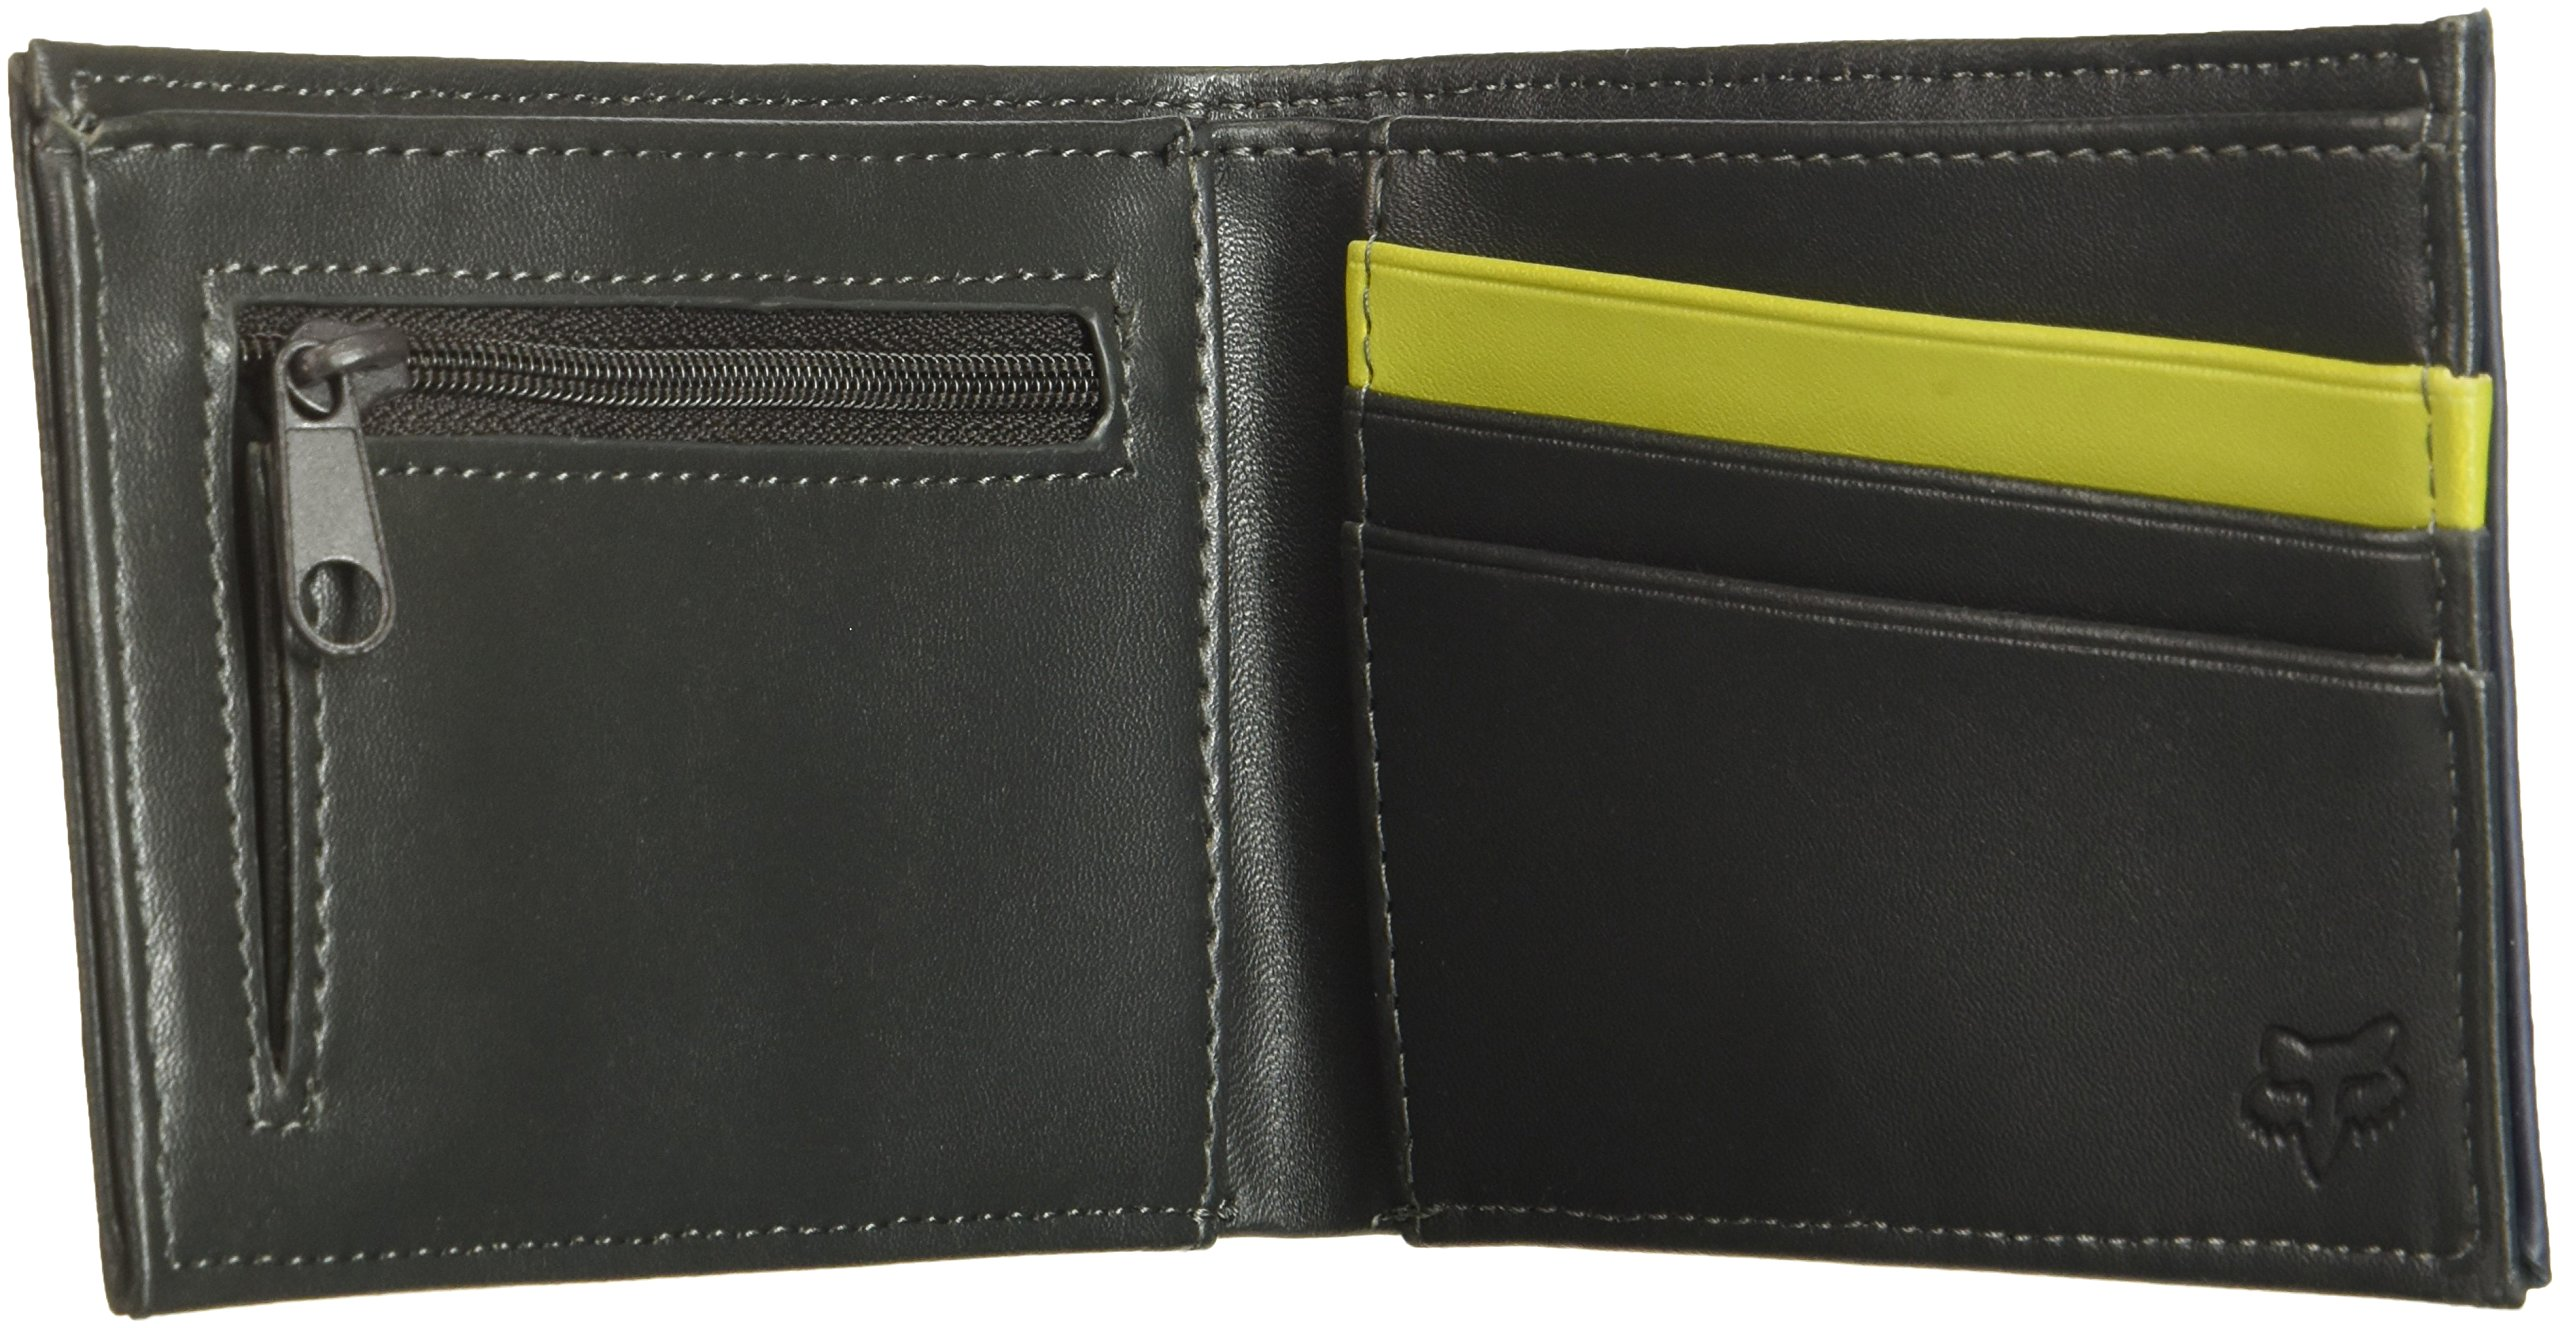 Fox Men's Draftr Pinned Pu Wallet, black, One Size by Fox (Image #4)